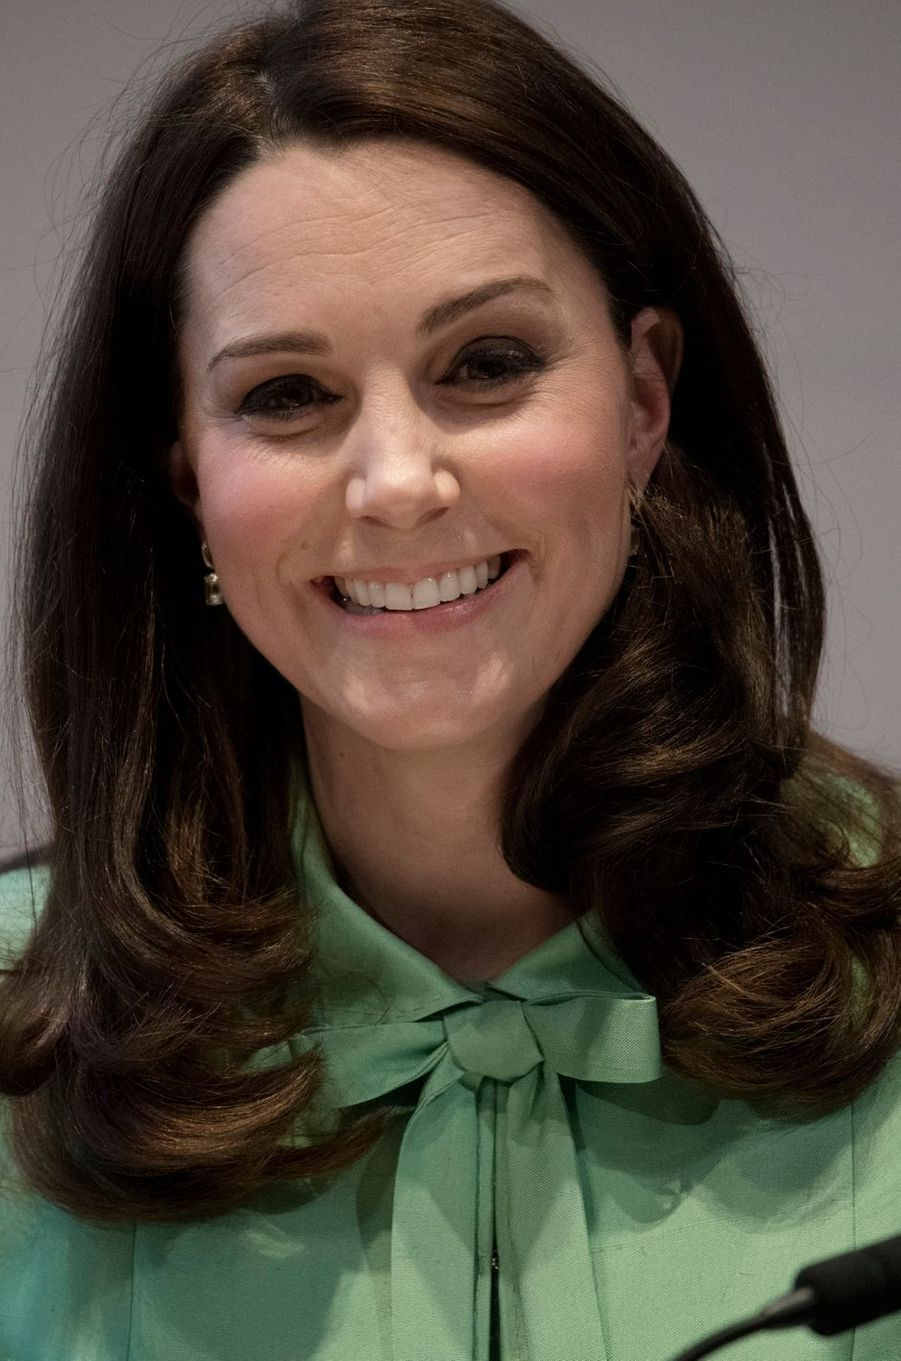 La duchesse de Cambridge à Londres, le 21 mars 2018